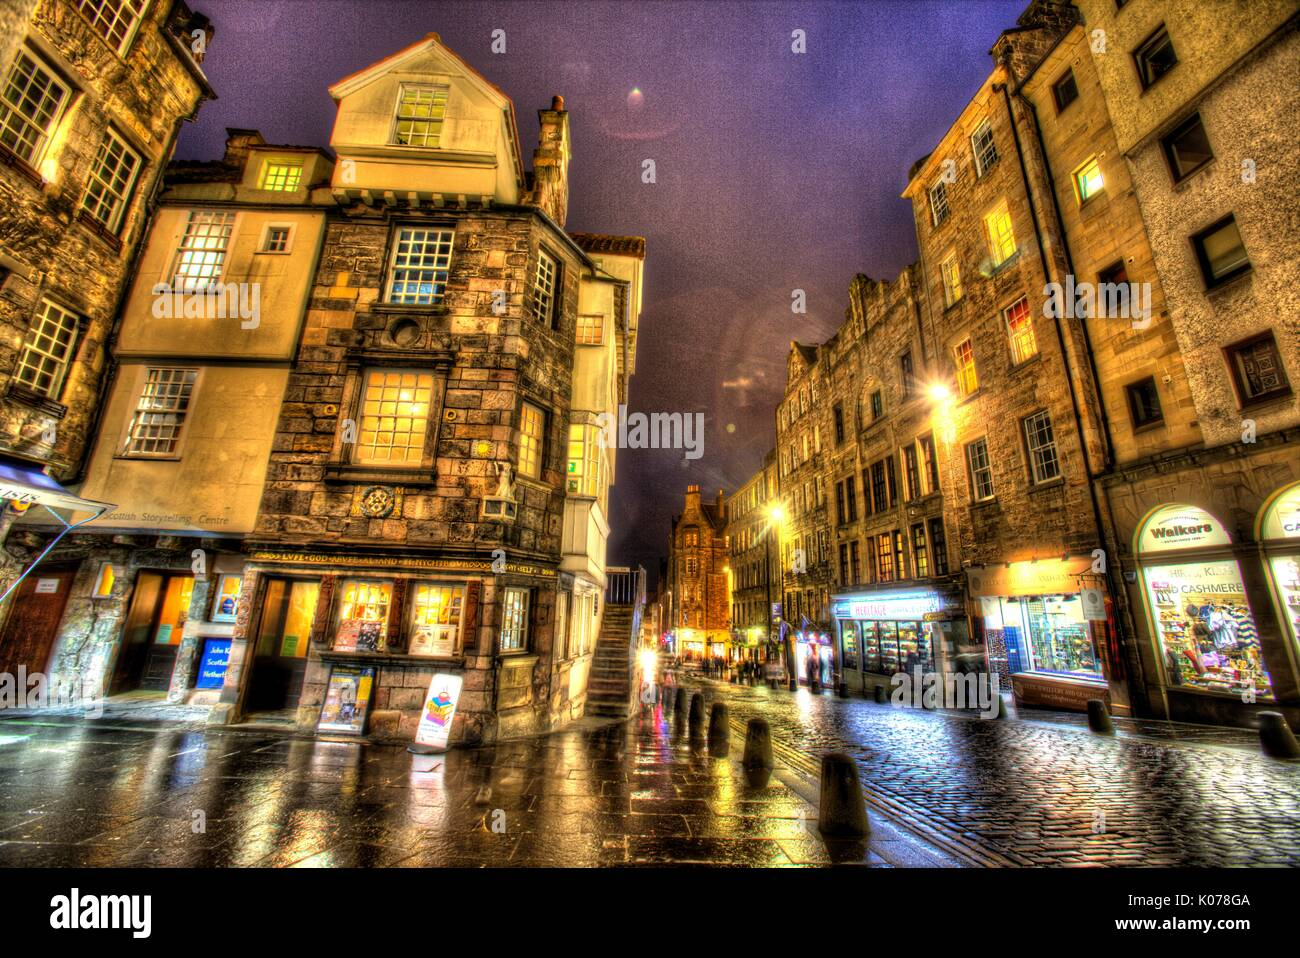 City of Edinburgh, Scotland. Picturesque night view of John Knox's House on the Royal Mile's High Street. Stock Photo